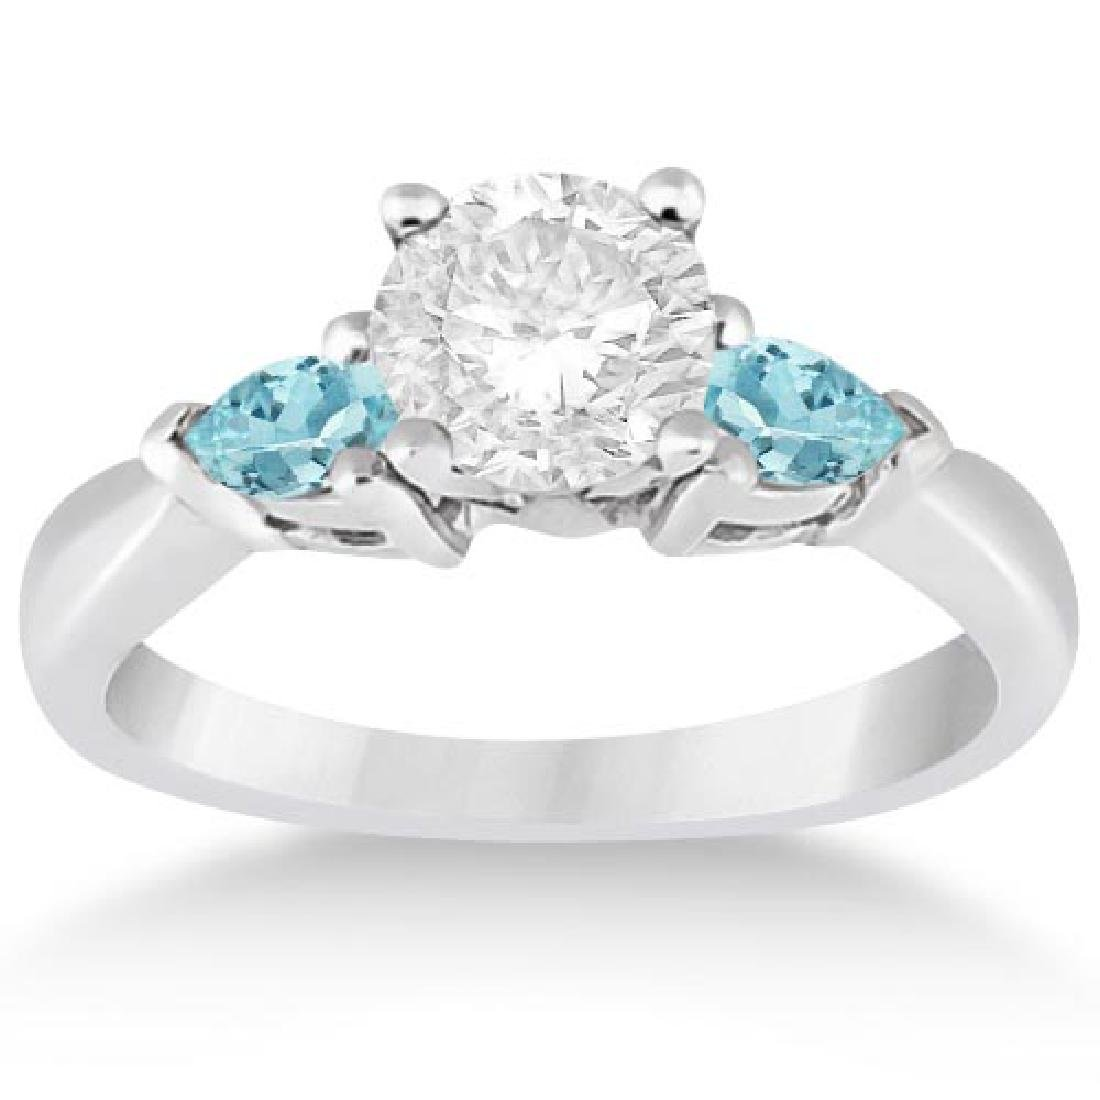 Pear Cut Three Stone Aquamarine Engagement Ring 14k Whi